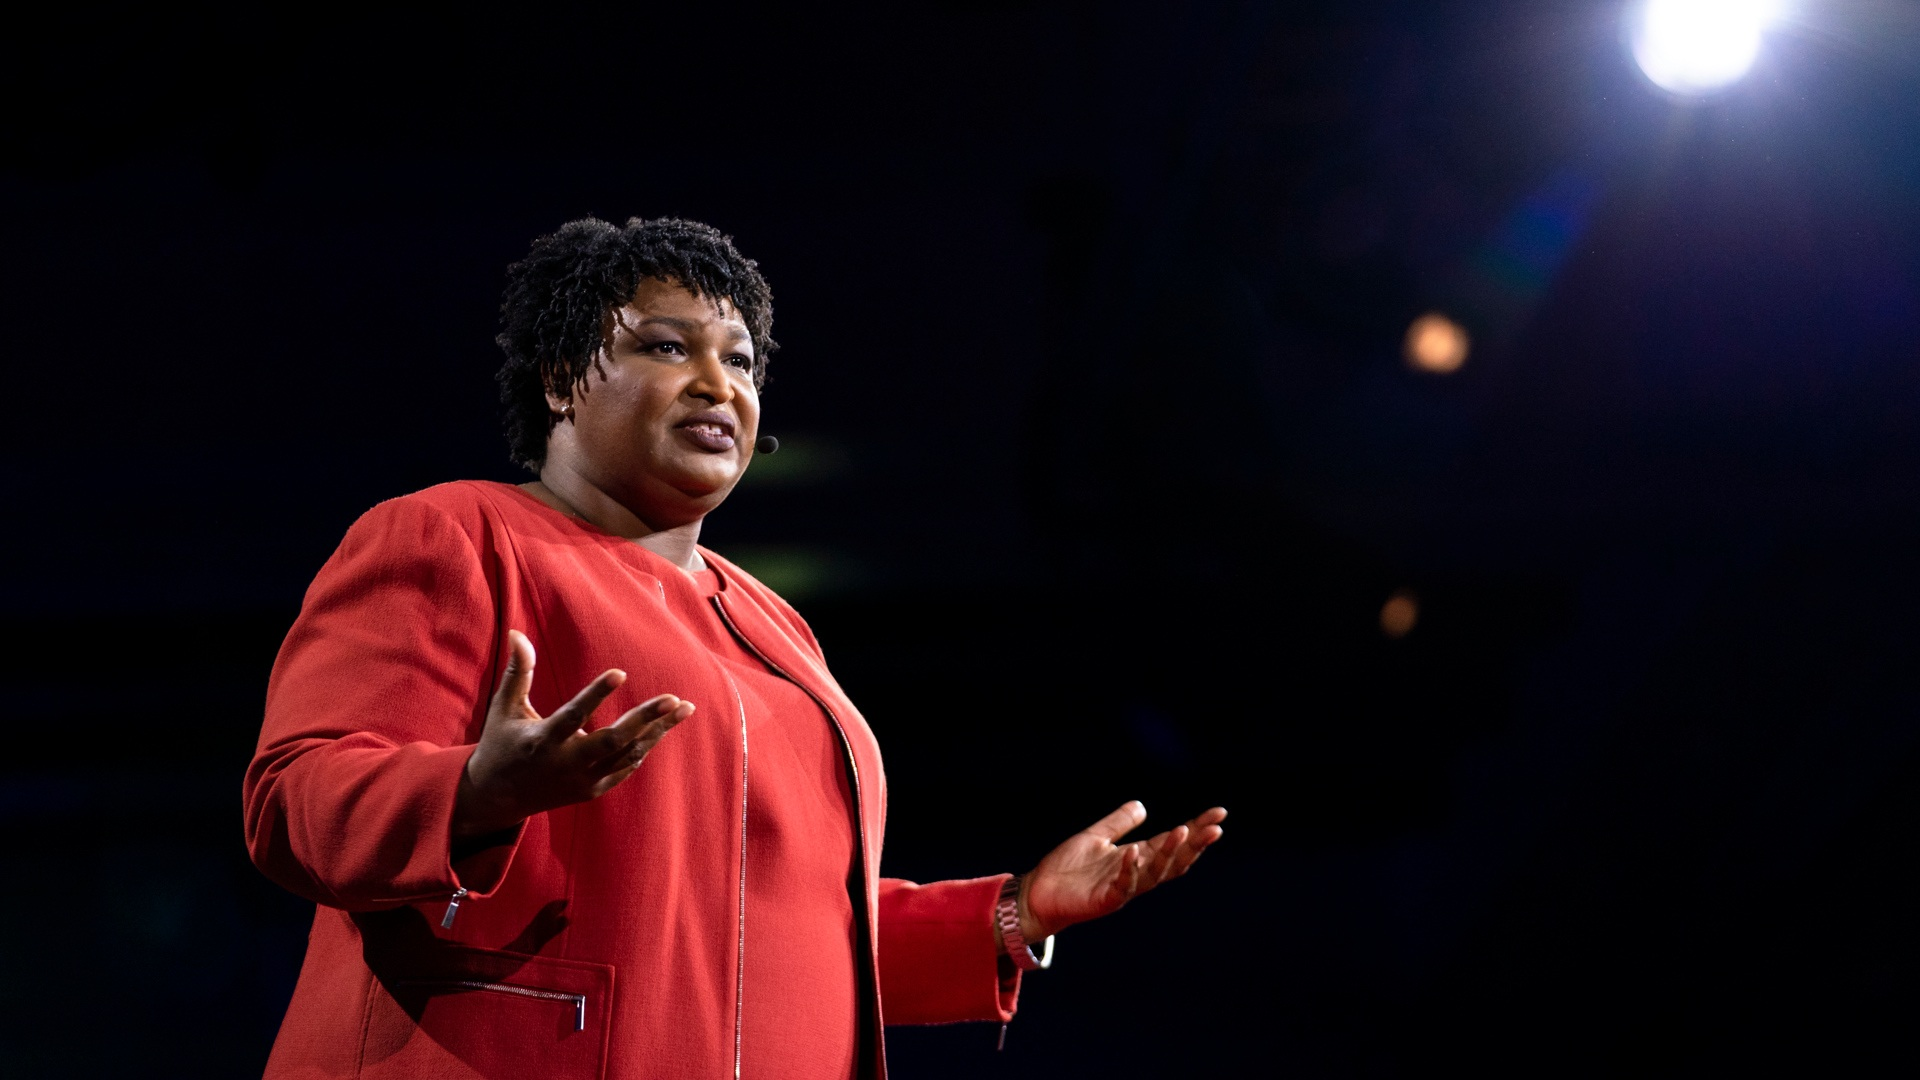 Stacey Abrams on how Democrats could win 2020